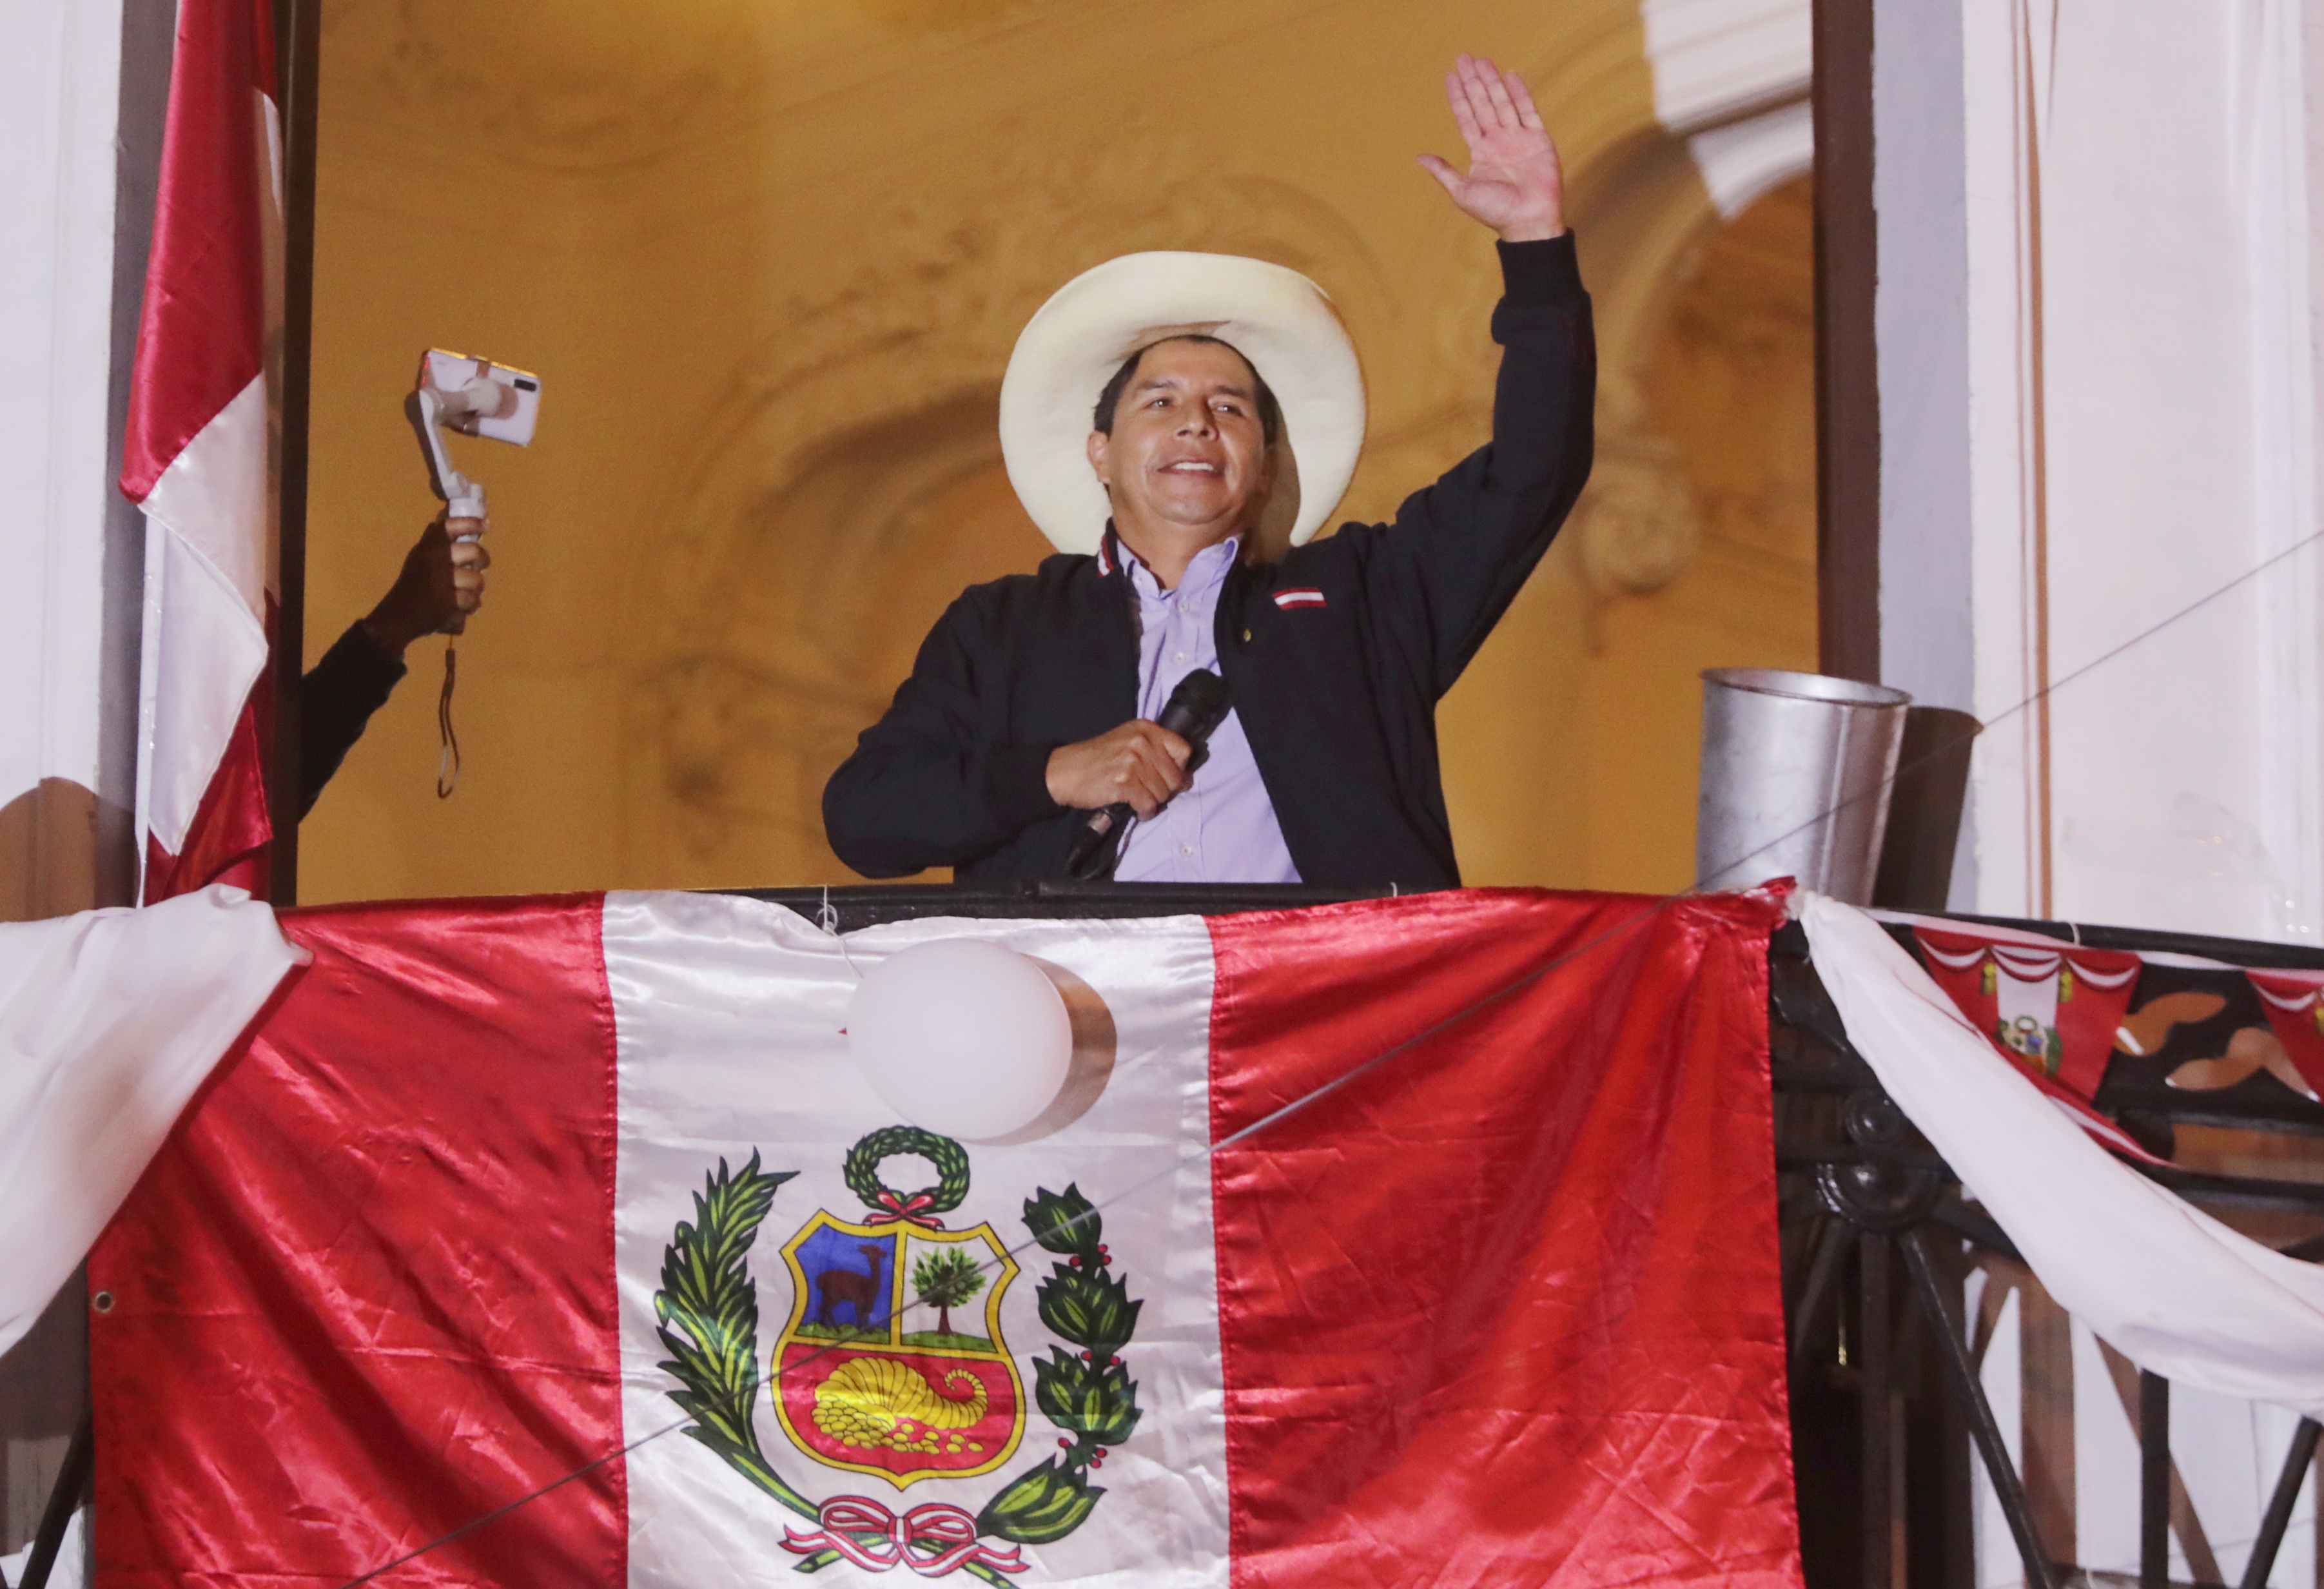 FILE  PHOTO: Peru's presidential candidate Pedro Castillo gestures to supporters the day after a run-off election, in Lima, Peru June 7, 2021. REUTERS/Sebastian Castaneda